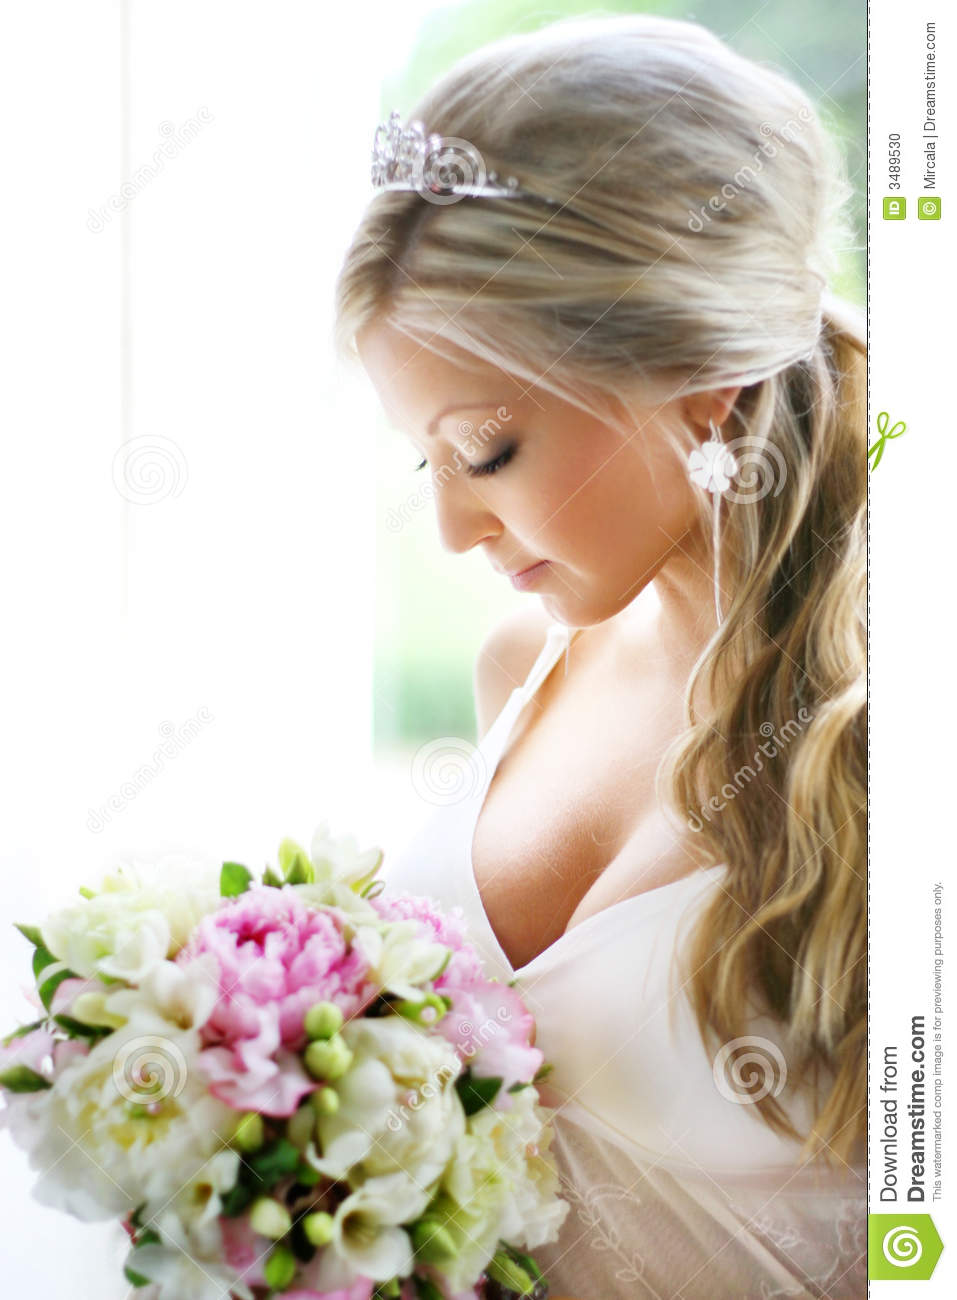 stock photo bride looking at bouquet image 3489530 bride and groom clipart free download bride and groom clipart free download